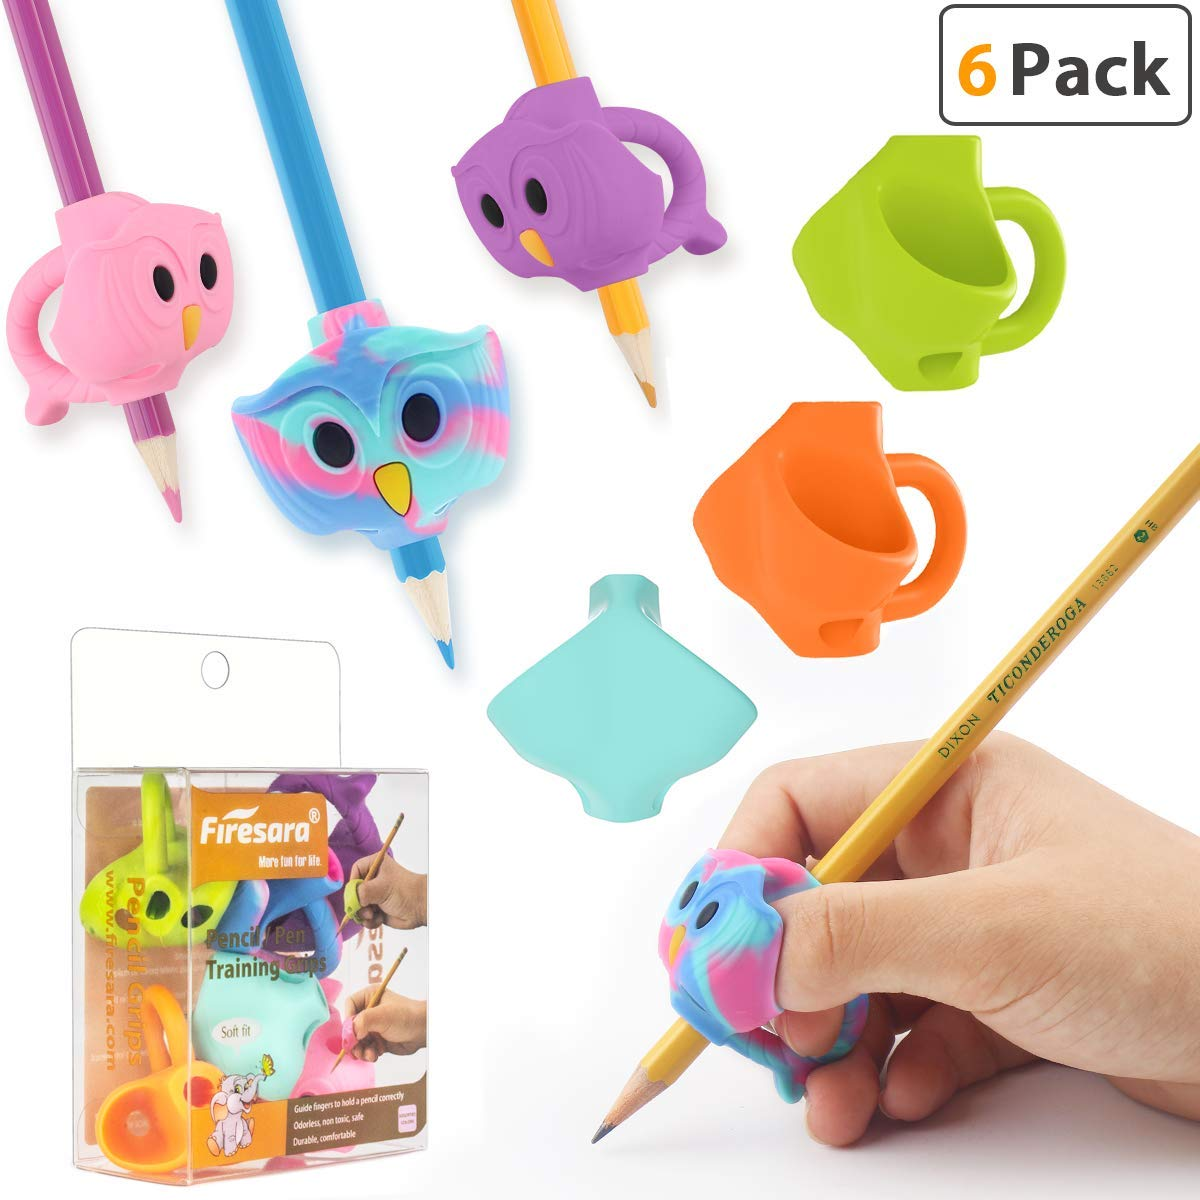 Pencil Grips, Firesara Original Owl Pencil Grips Three Fingers Fixed Pencil Correction Grips for Kids Handwriting Posture Correction Children Adults Special Needs for Lefties or Righties (6PCS)